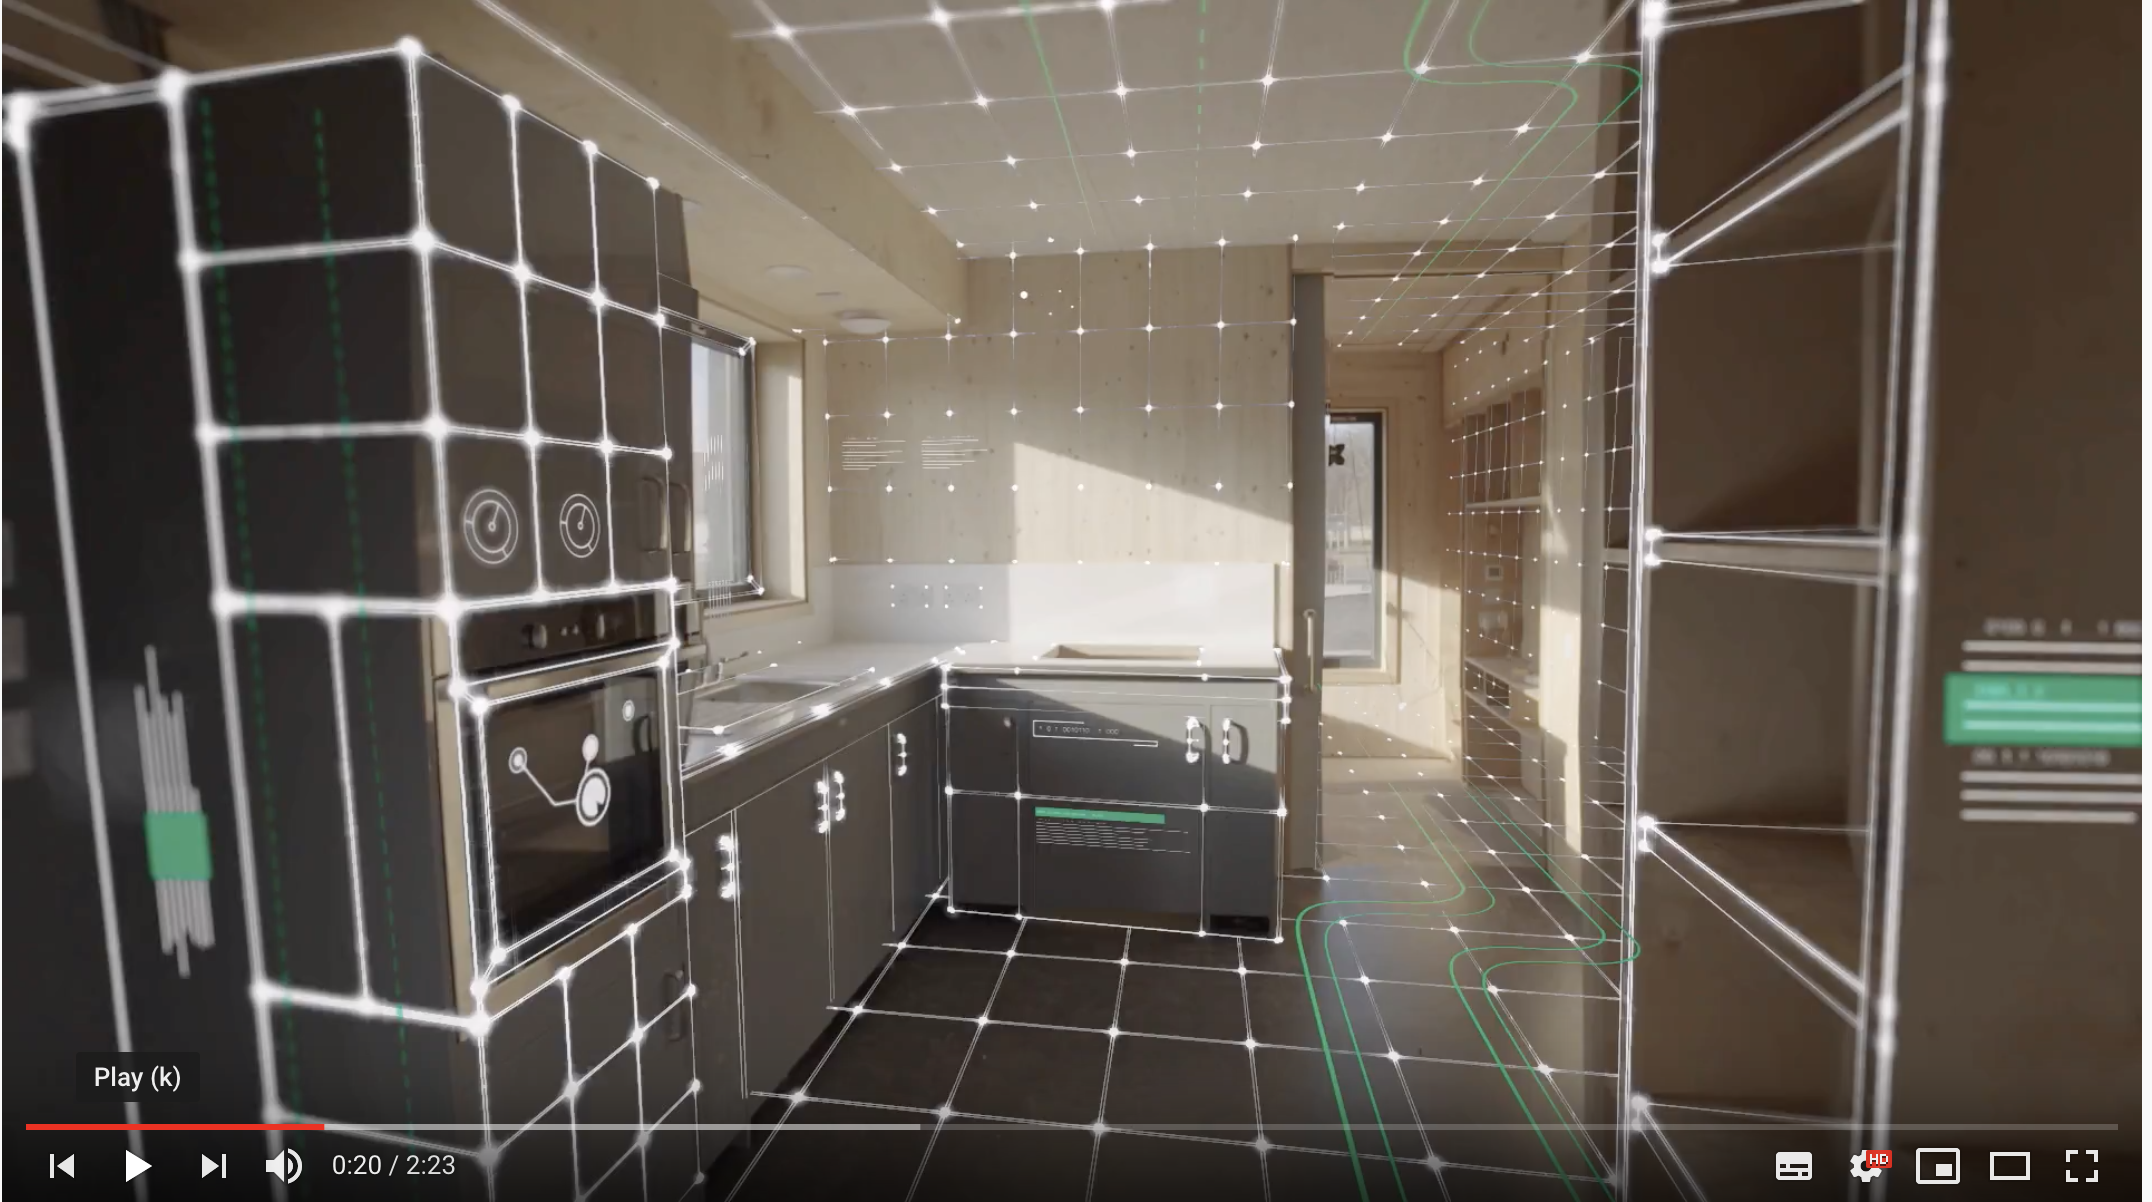 Picture of a kitchen with lines overlaid to indicate smart sensors